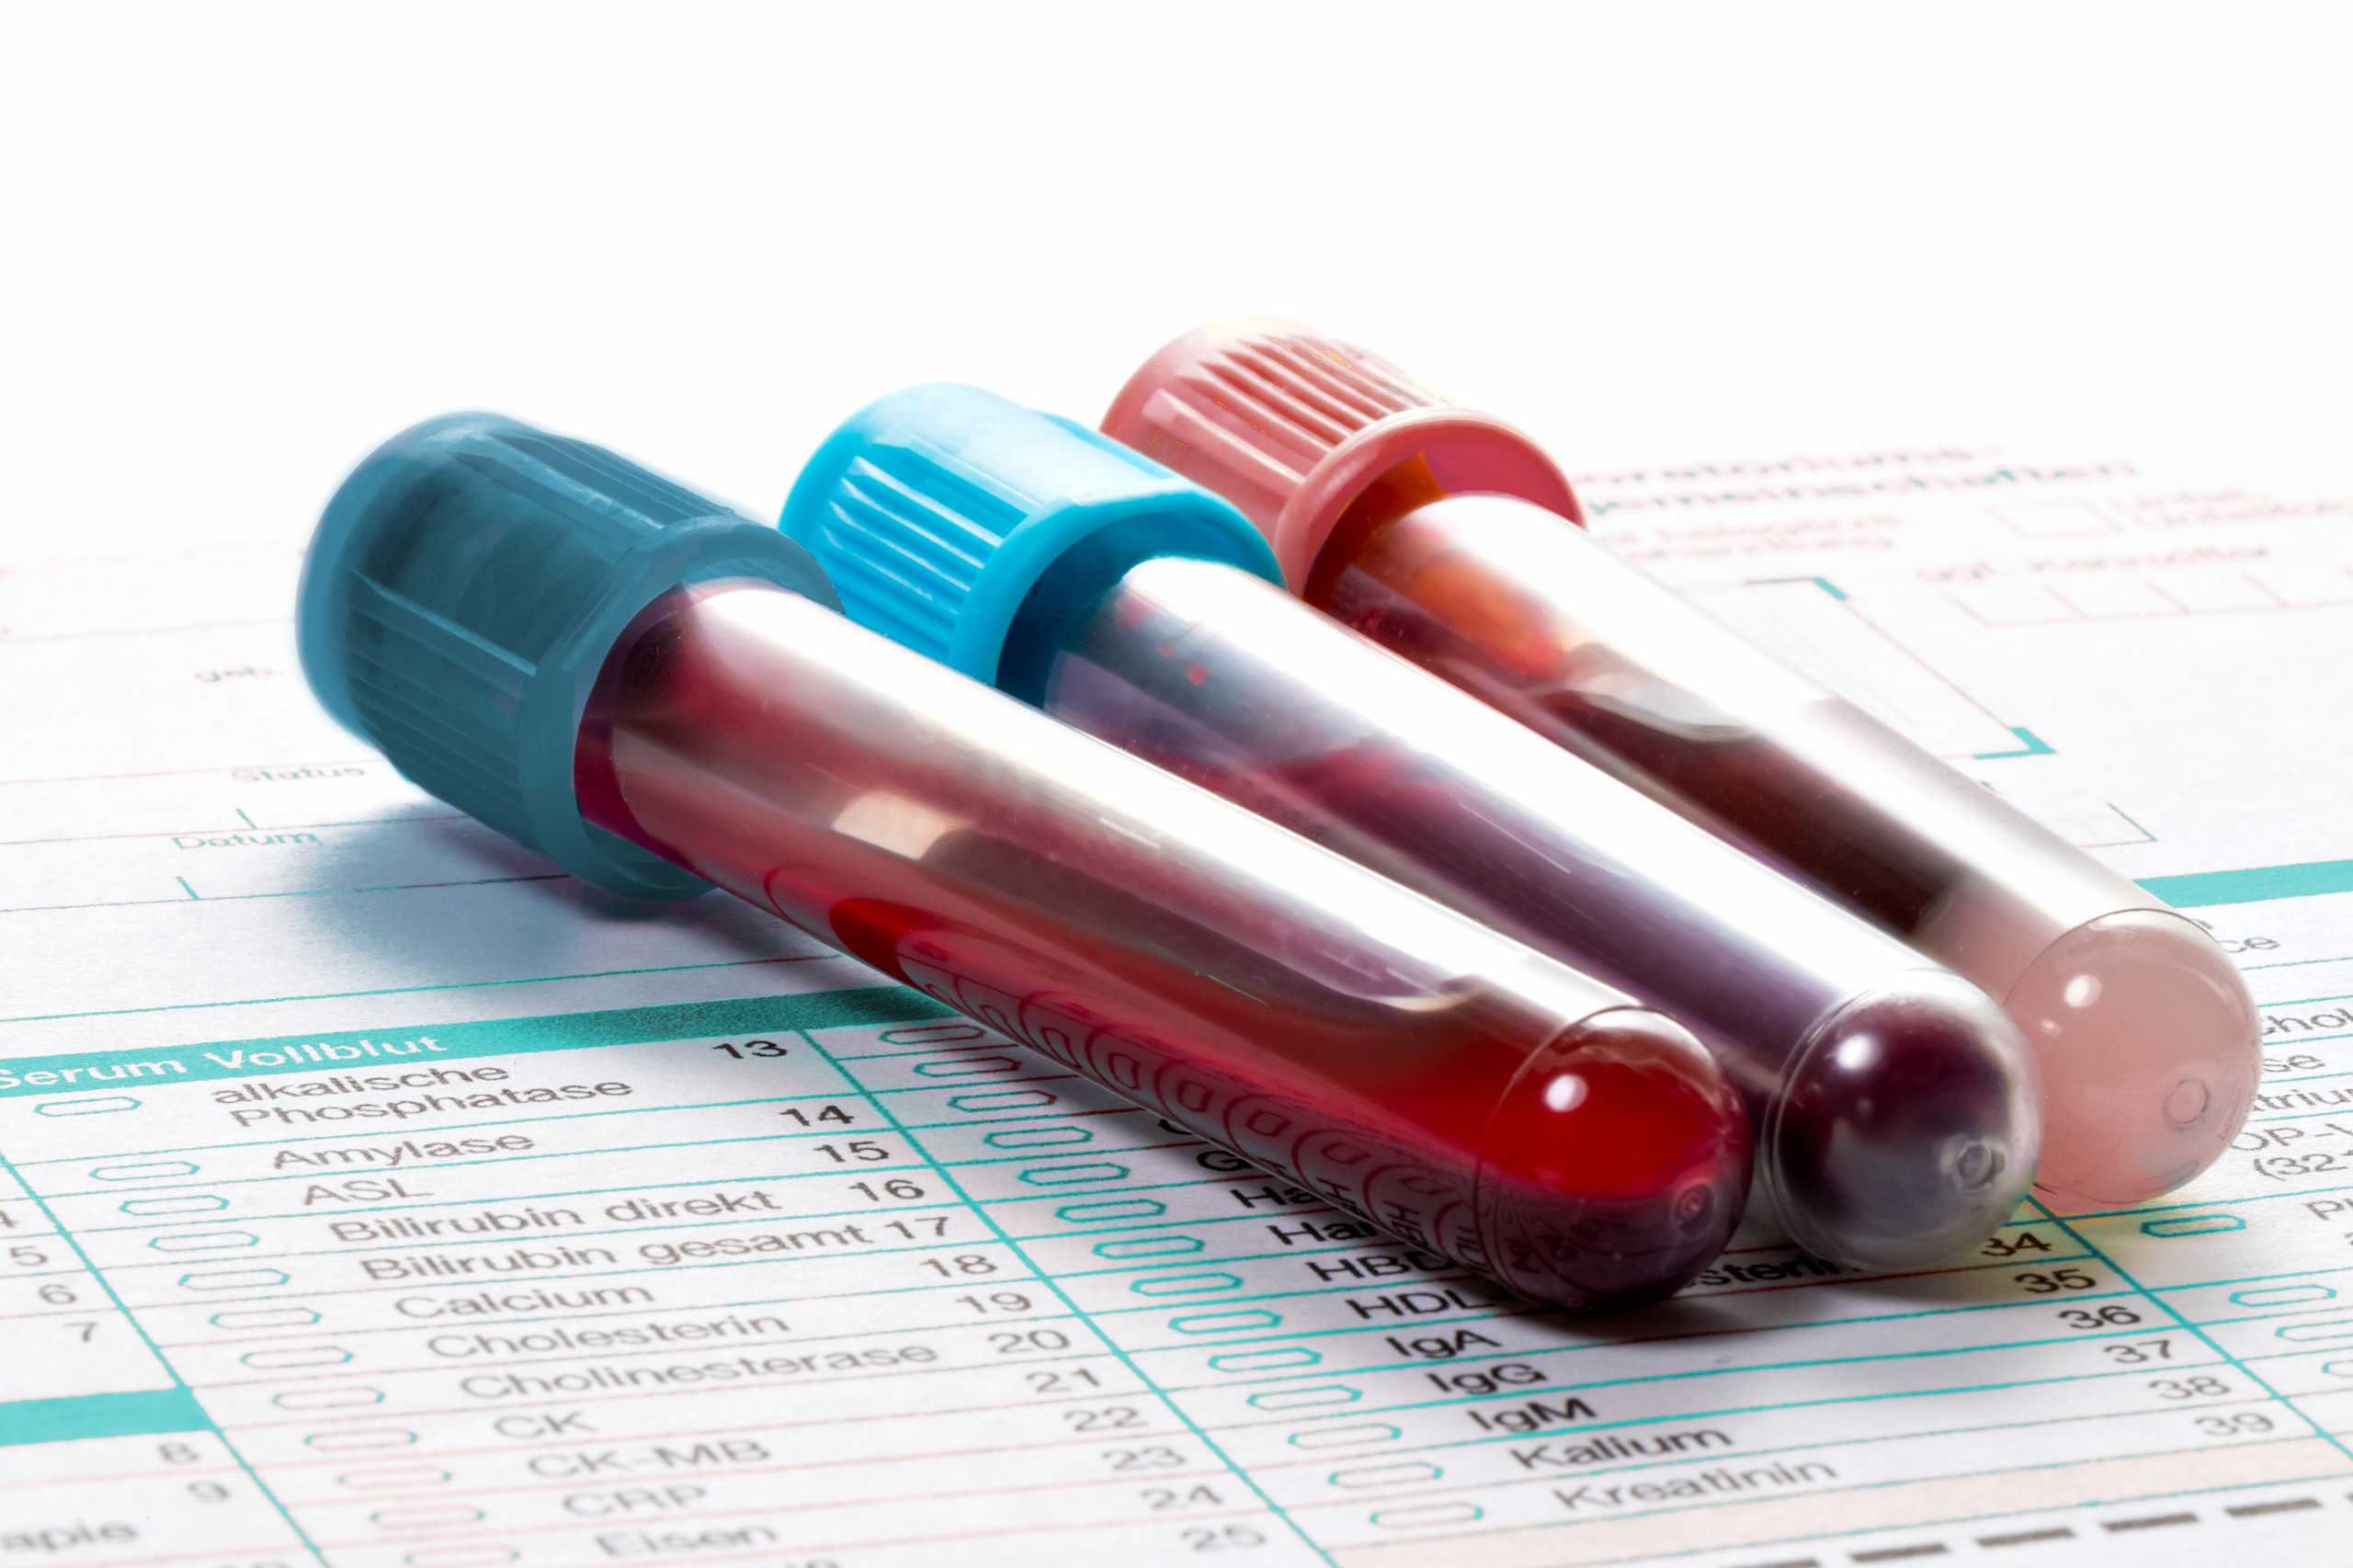 Blood samples in ampoules for hematological tests